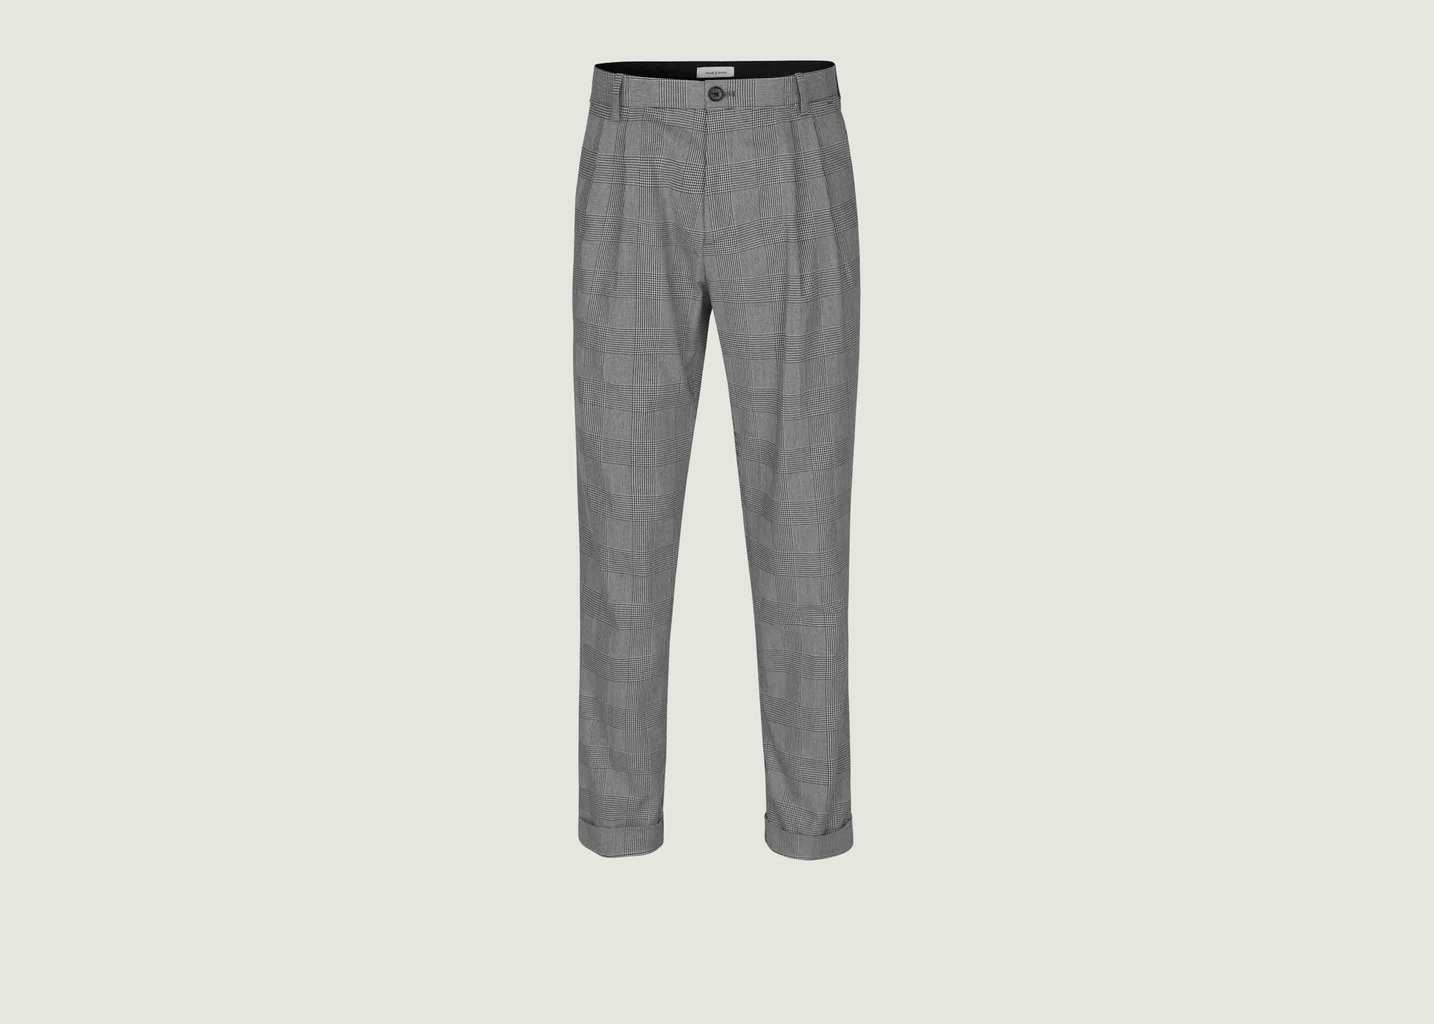 Pantalon A Carreaux Lincoln - Samsoe Samsoe